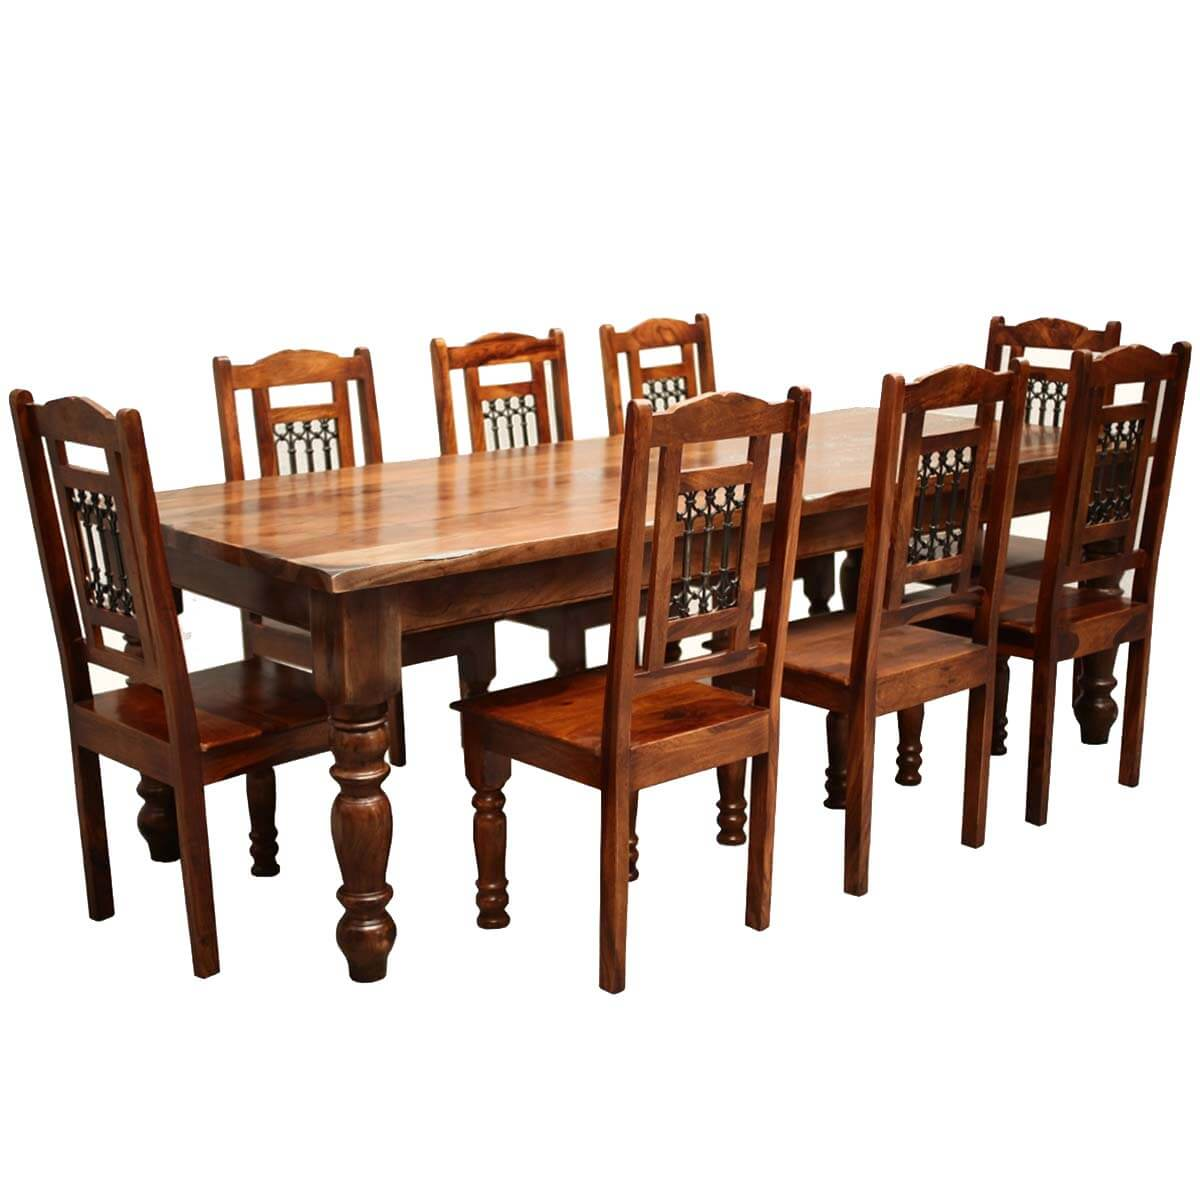 Rustic furniture solid wood large dining table 8 chair set for Furniture dining table